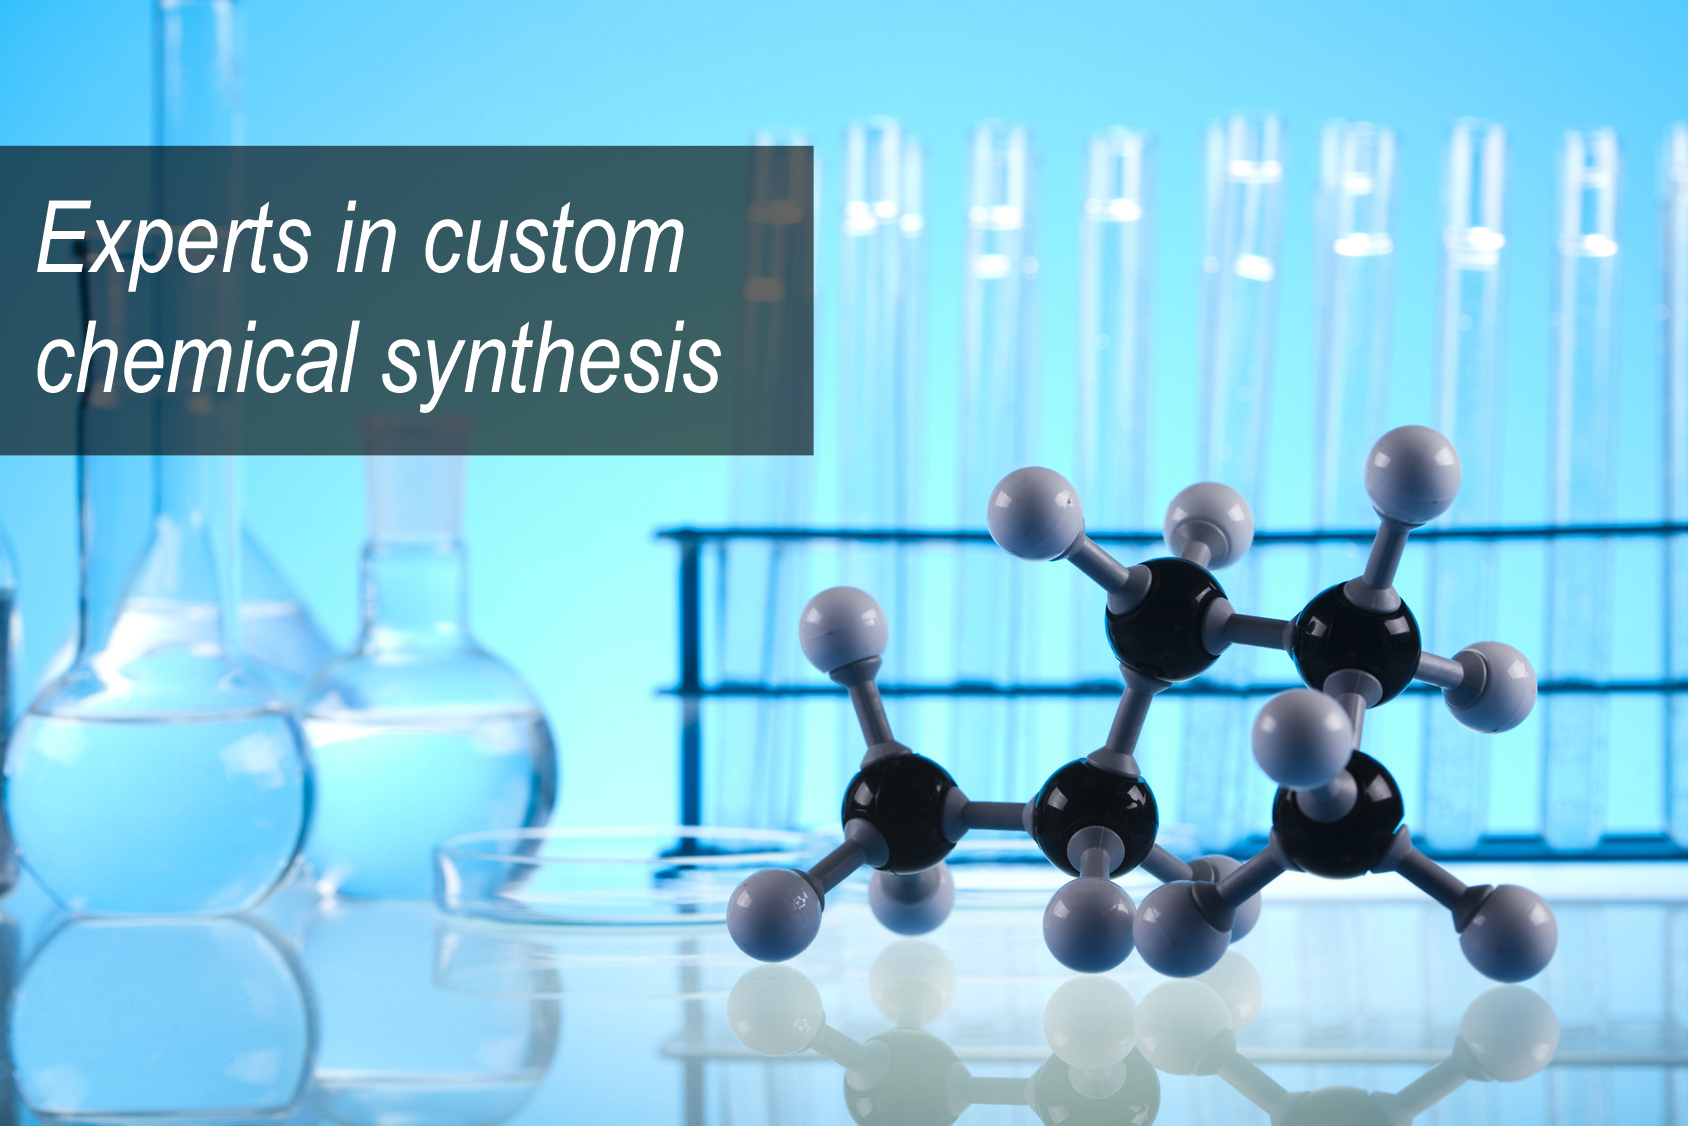 banner_customSynthesis.jpg